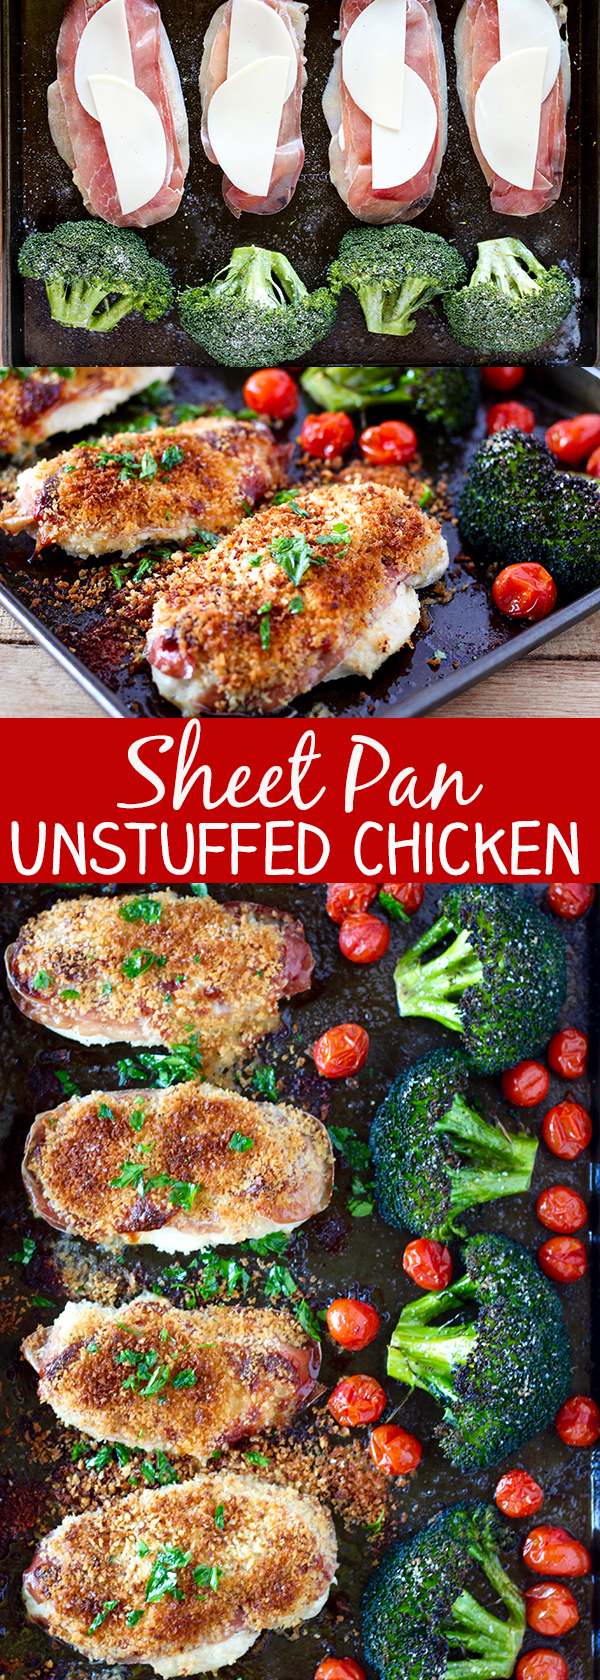 Sheet Pan Unstuffed Chicken Breasts and Roasted Broccoli